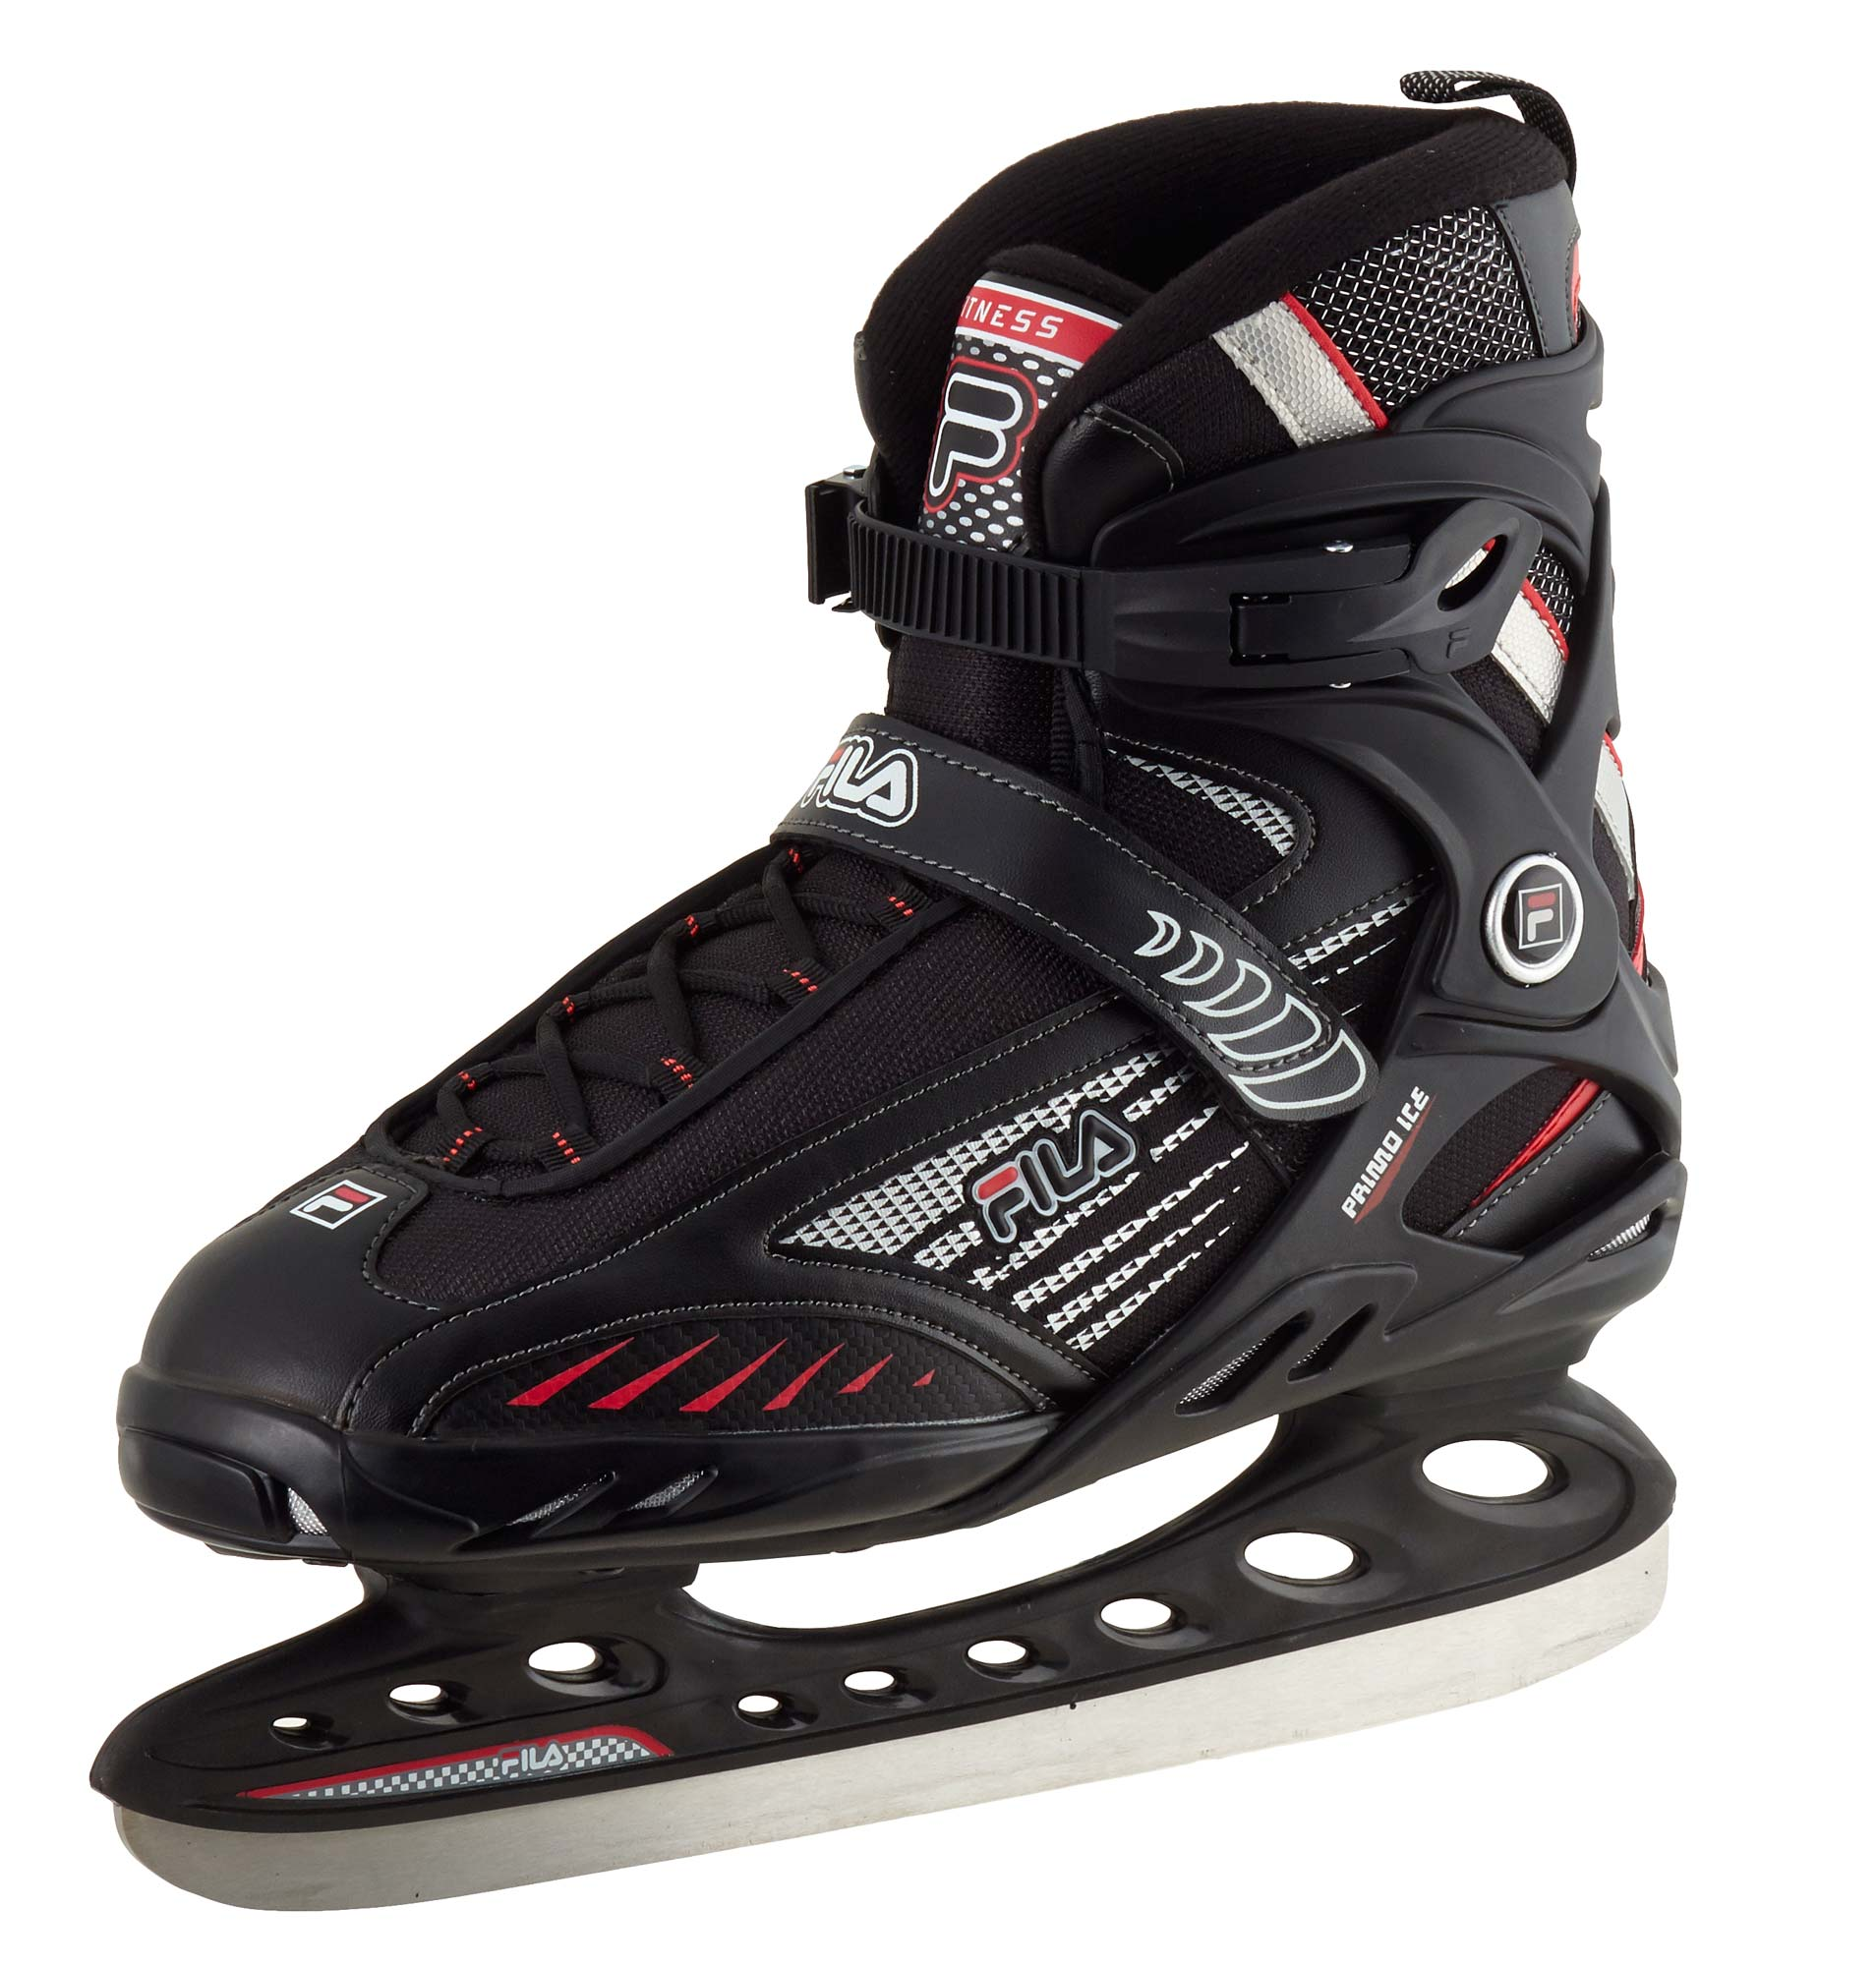 FILA Schlittschuhe 'Primo ICE '; black/red 010414110